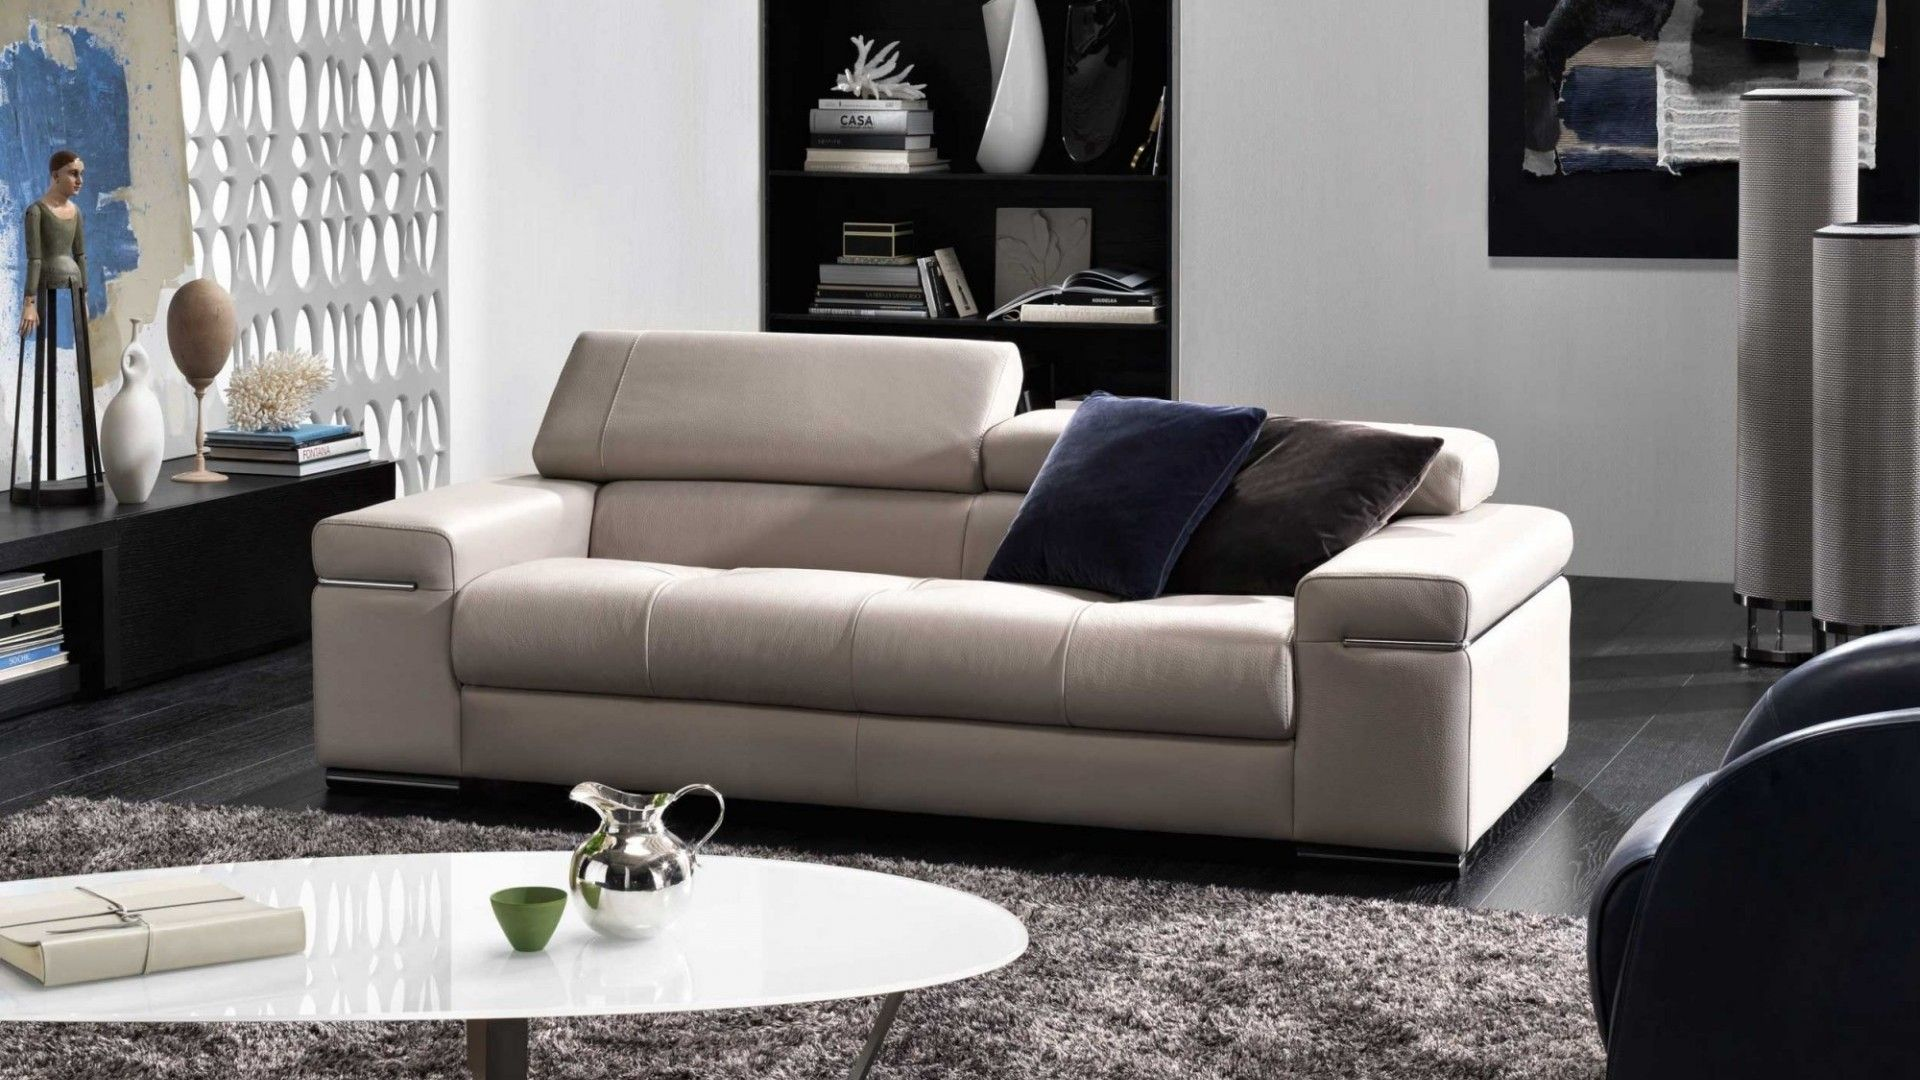 Natuzzi italia leather avana sofa natuzzi italia for Natuzzi leather sofa